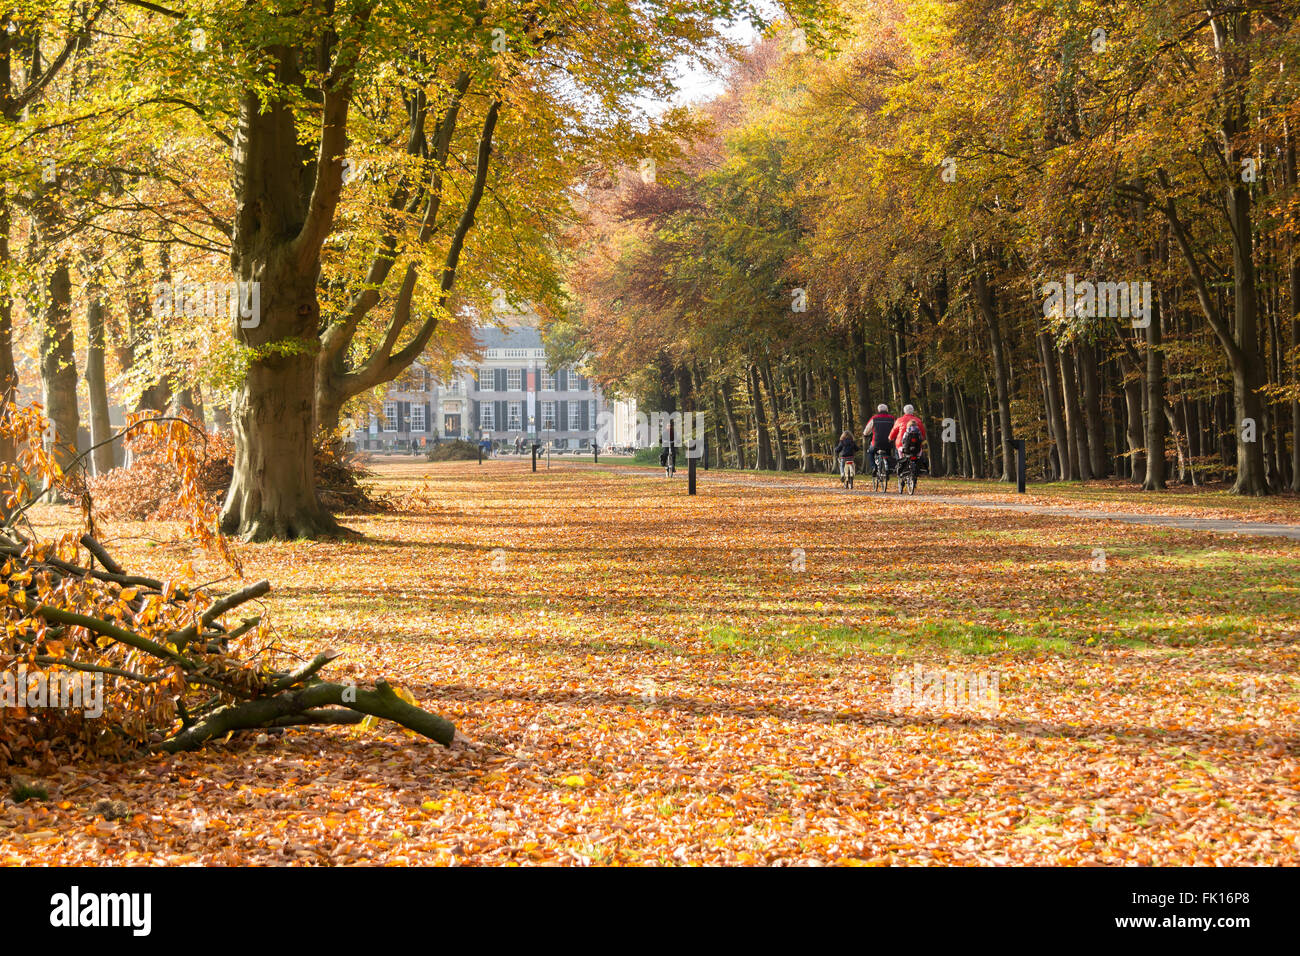 Bicycling people on path towards Groeneveld Castle in Baarn in autumn, Netherlands - Stock Image